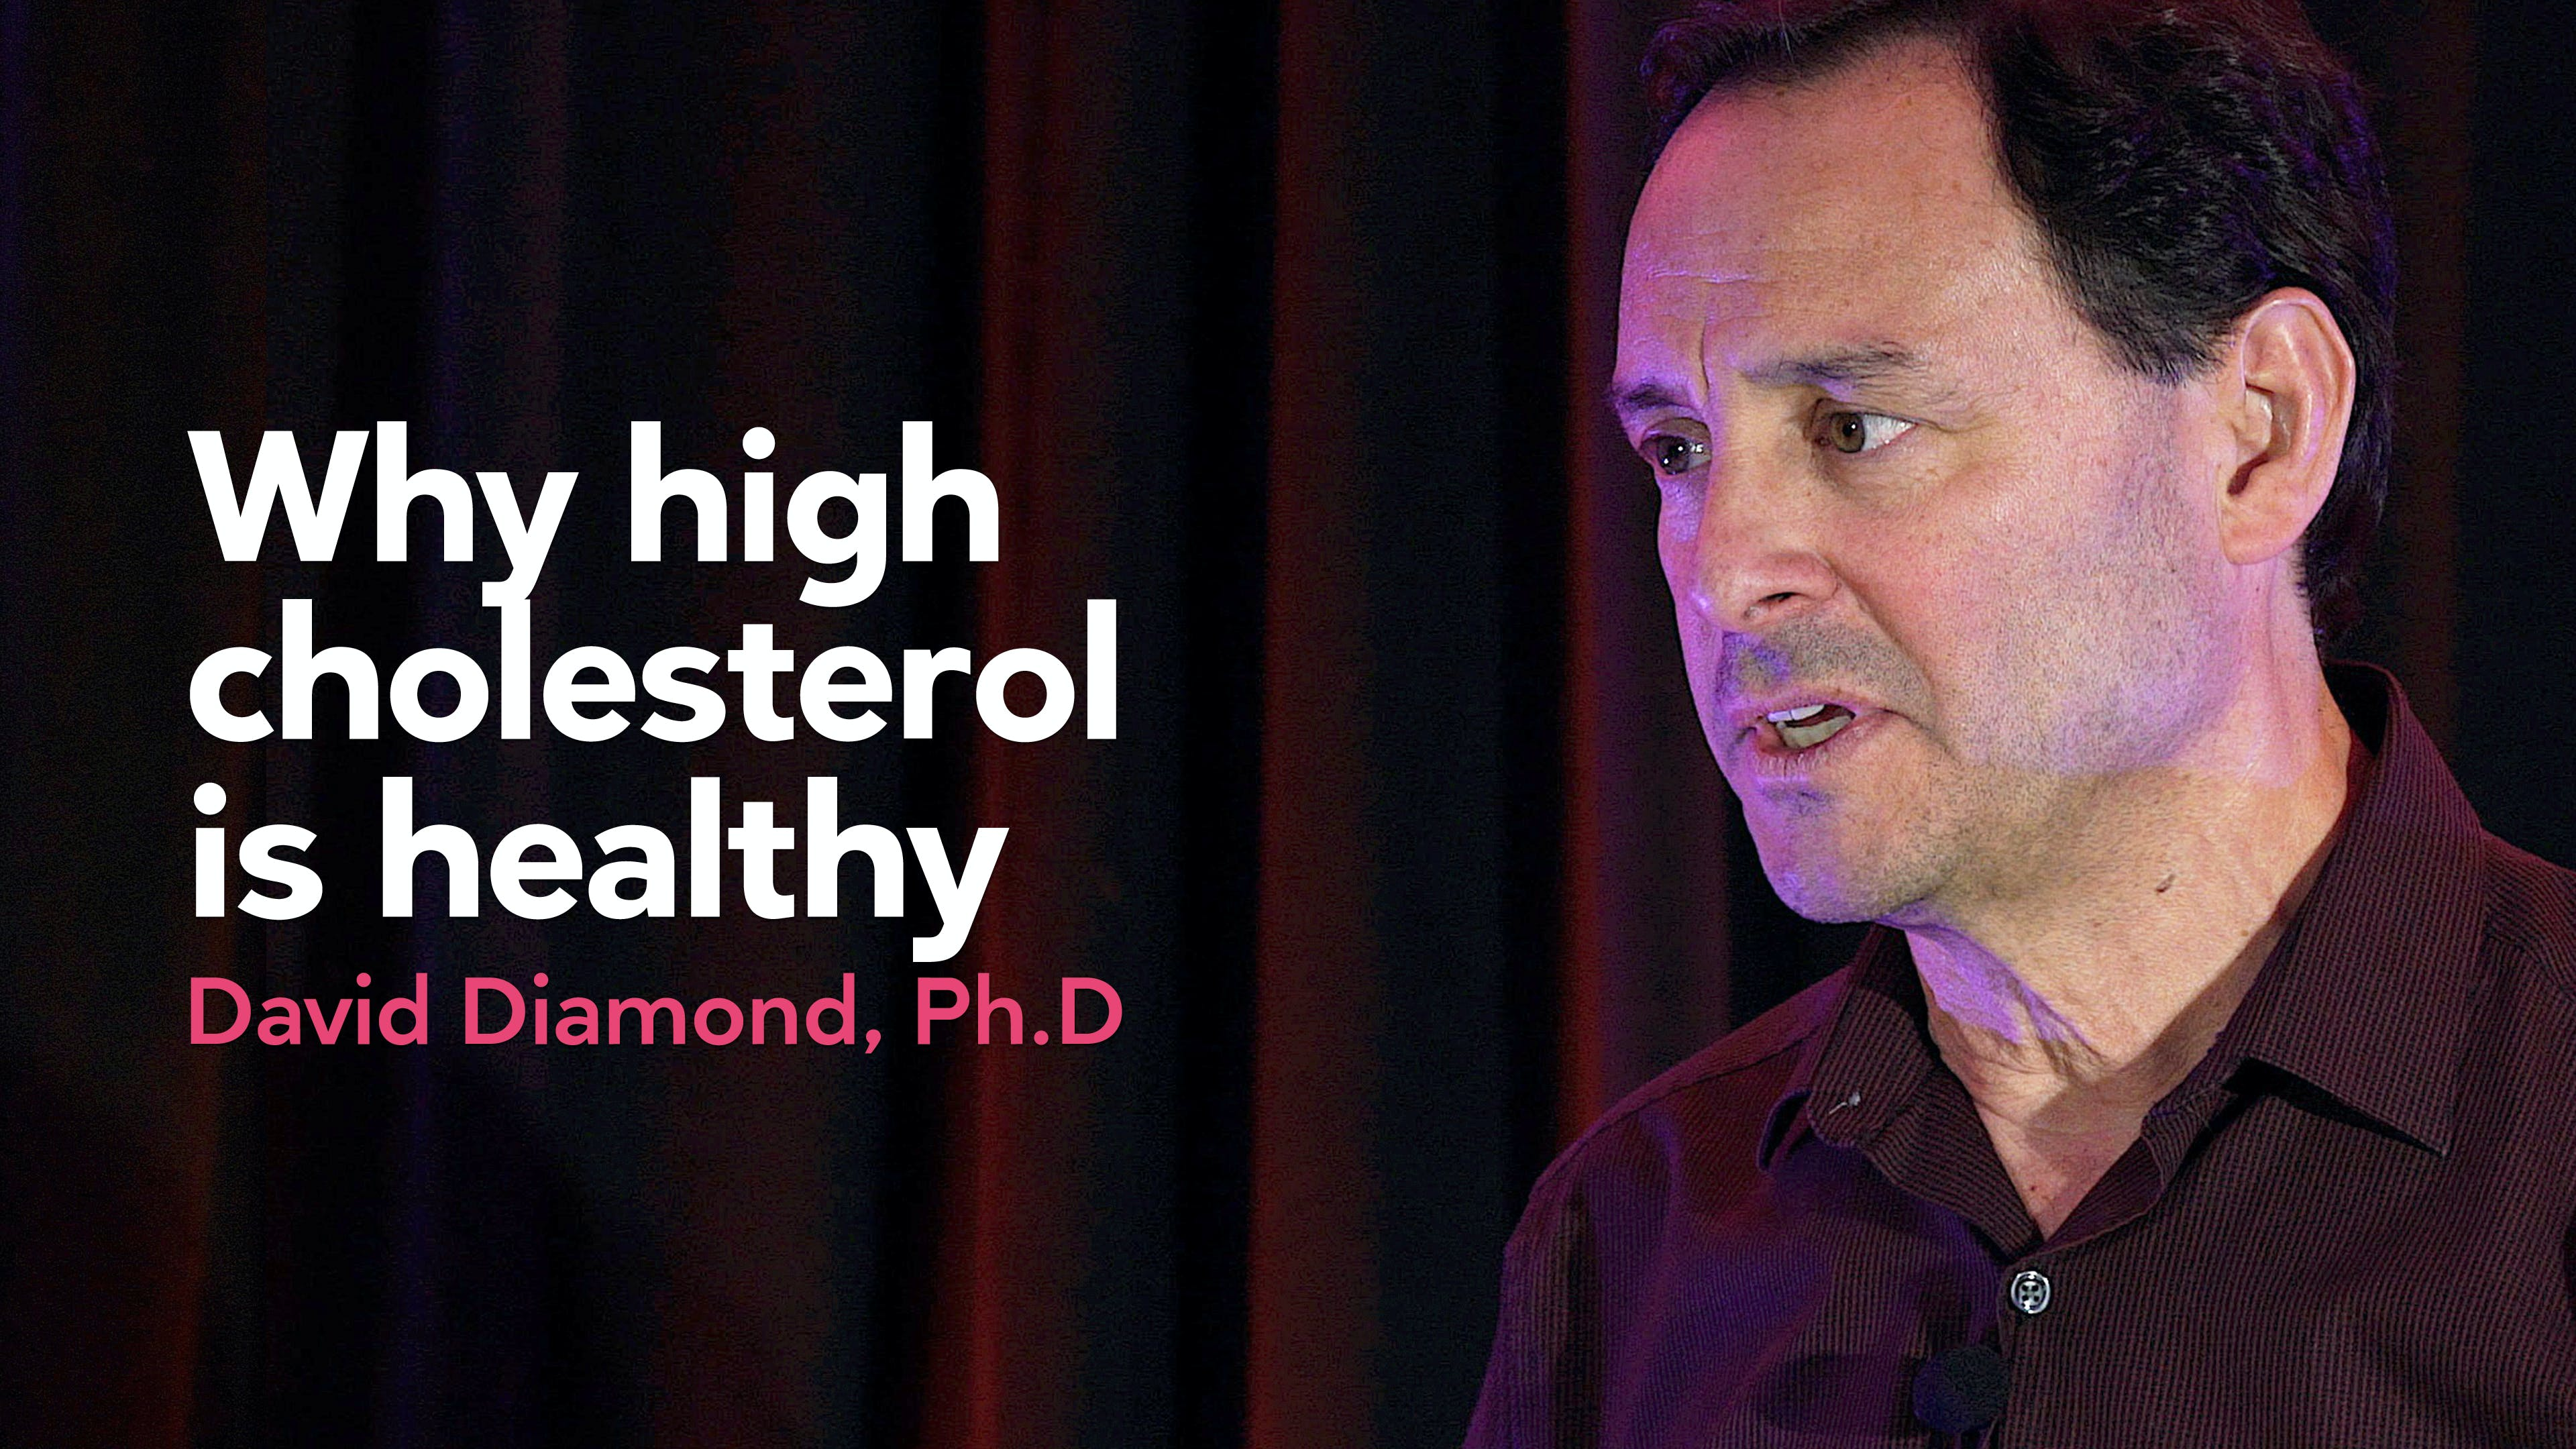 Why high cholesterol could be healthy